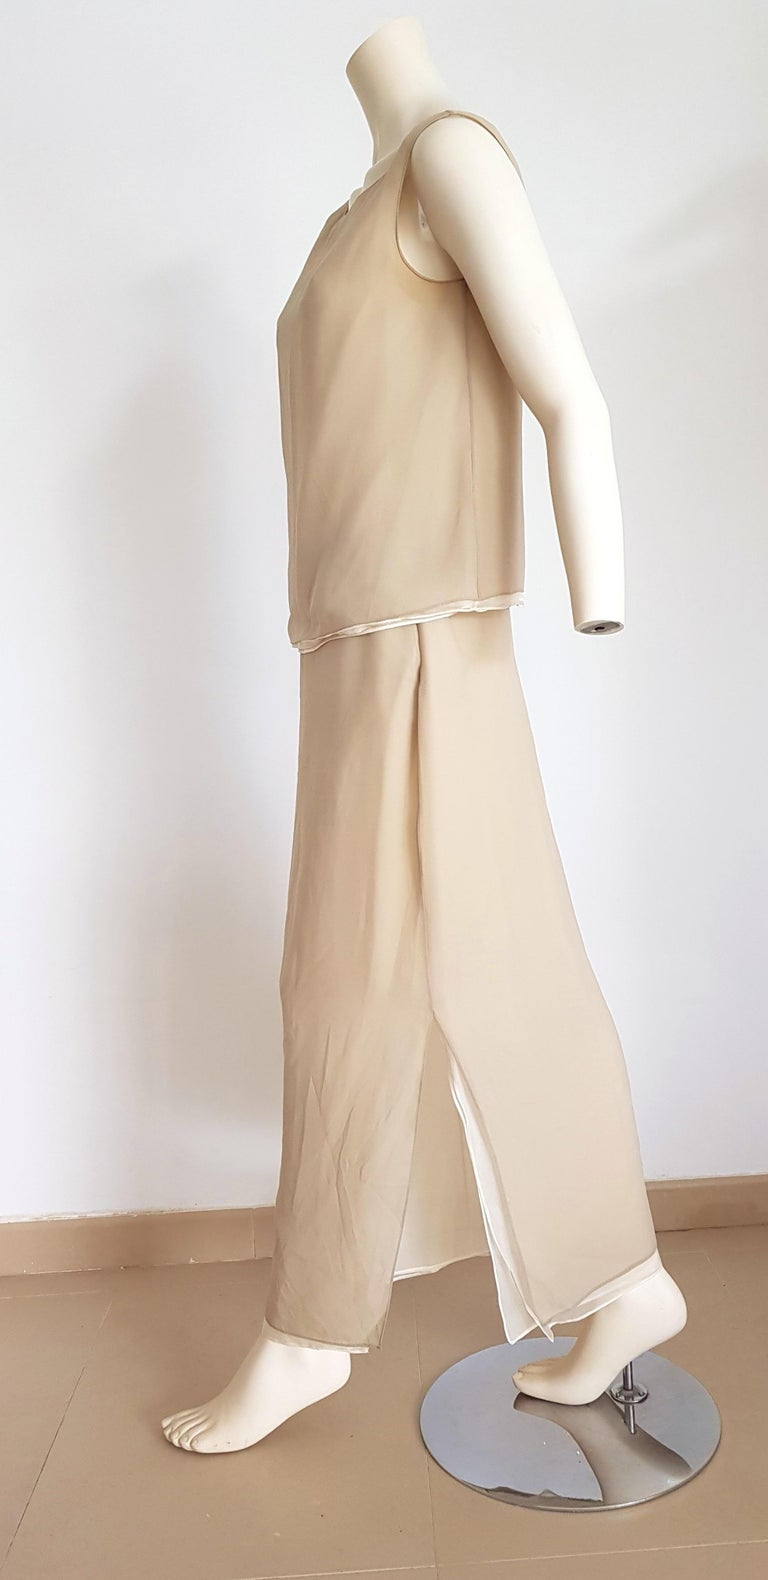 Donna Karan two beige tones, double layer, top and skirt silk dress - Unworn, New  SIZE: equivalent to about Small / Medium, please review approx measurements as follows in cm.  TOP: lenght 52, chest underarm to underarm 50, bust circumference 85,